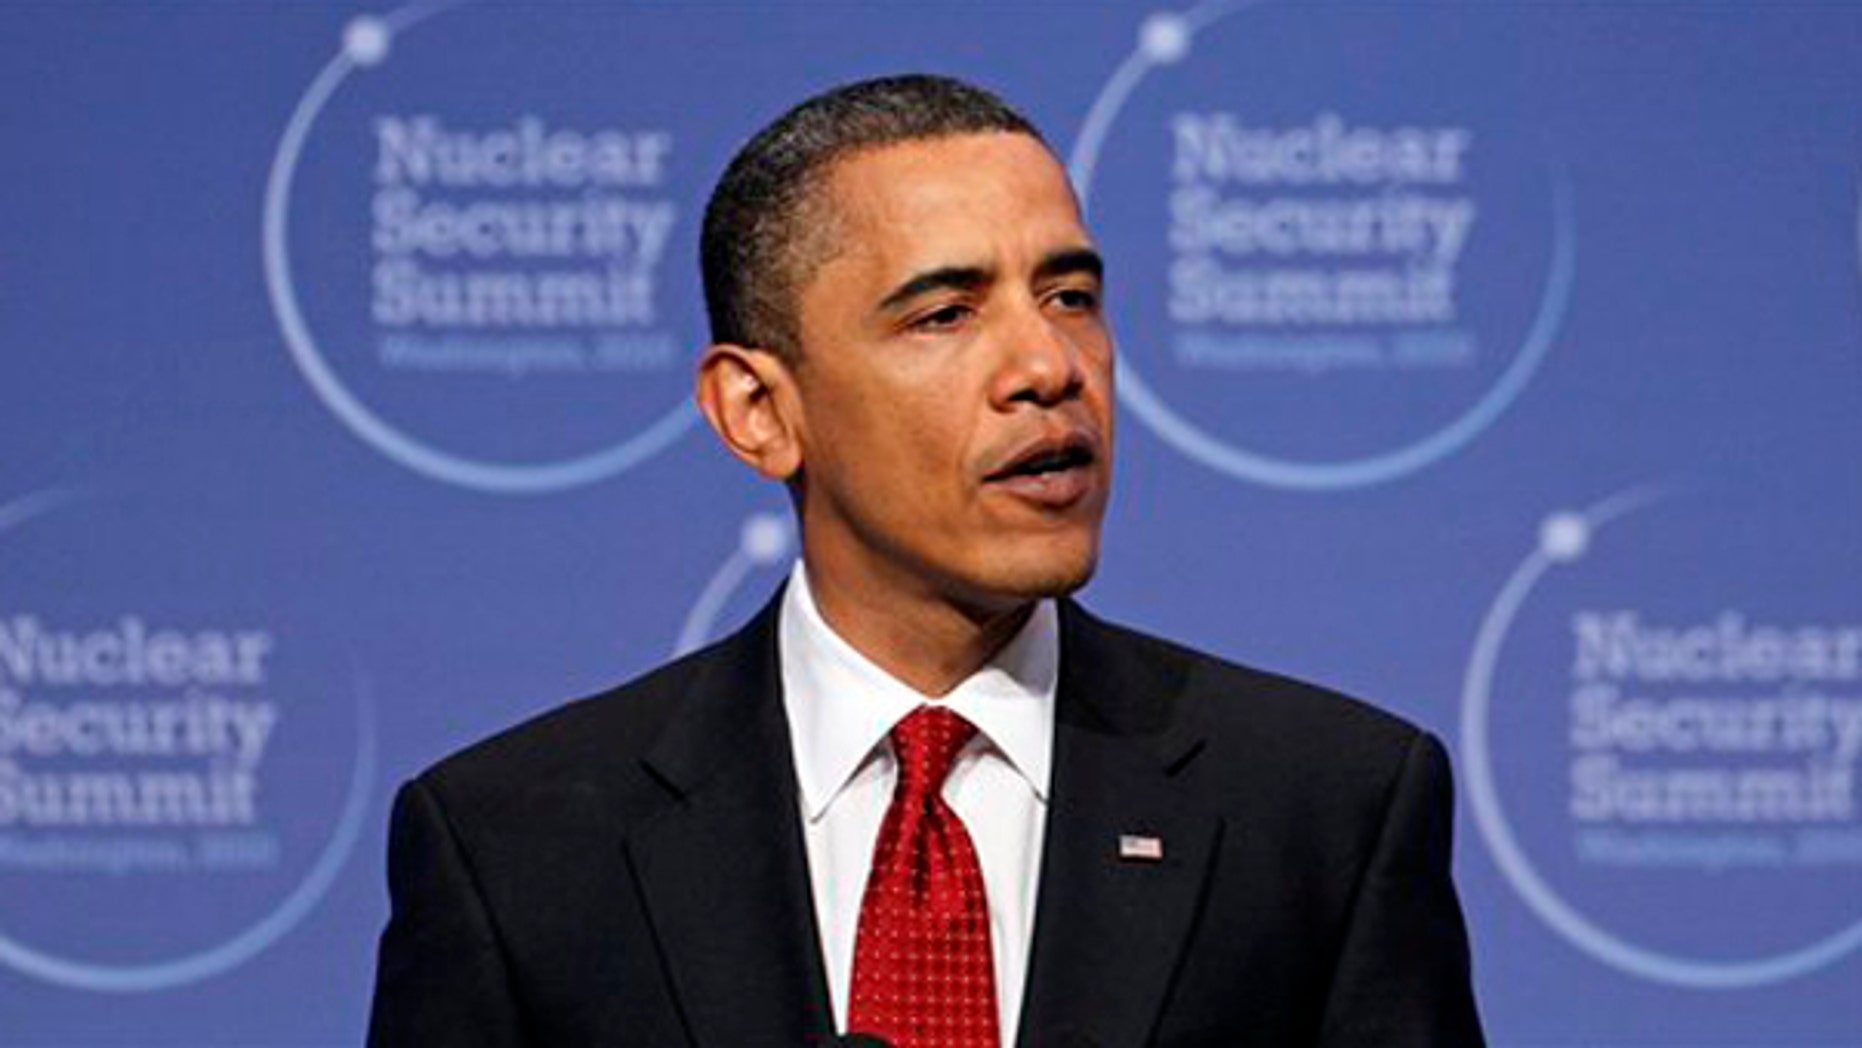 President Obama speaks at the conclusion of the Nuclear Security Summit in Washington April 13. (AP Photo)